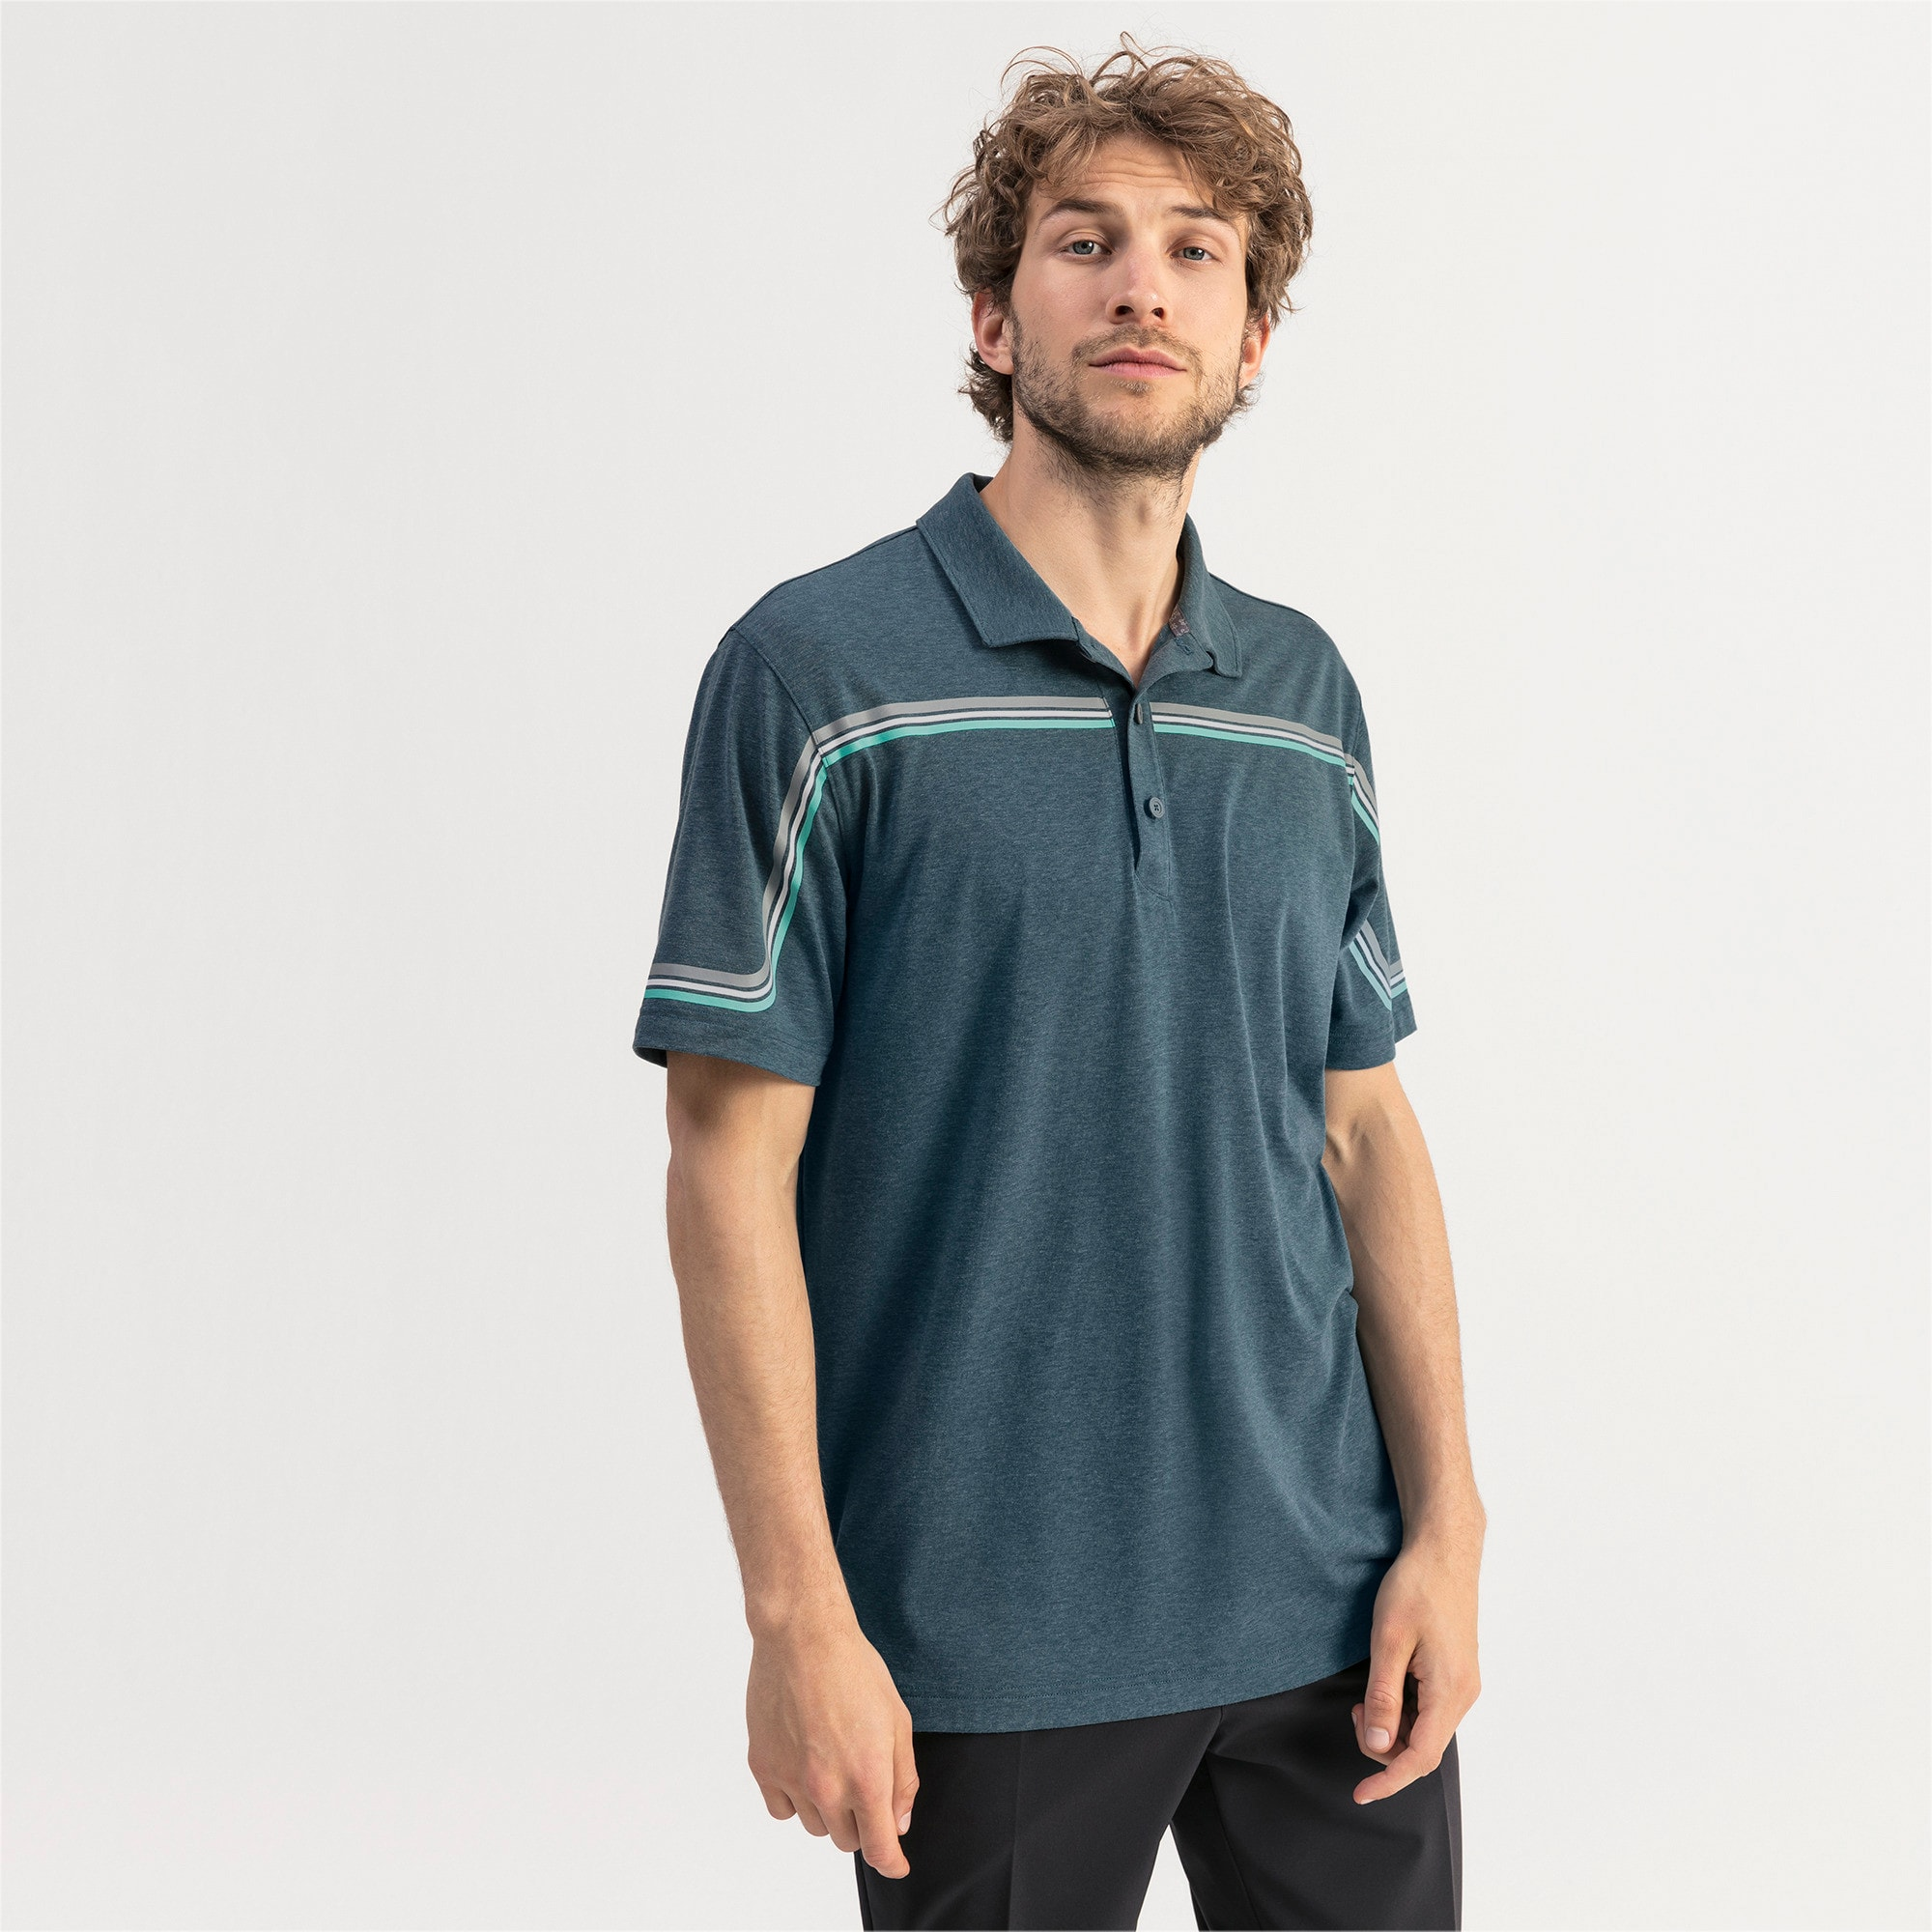 Thumbnail 1 of Looping Men's Golf Polo, Gibraltar Sea Heather, medium